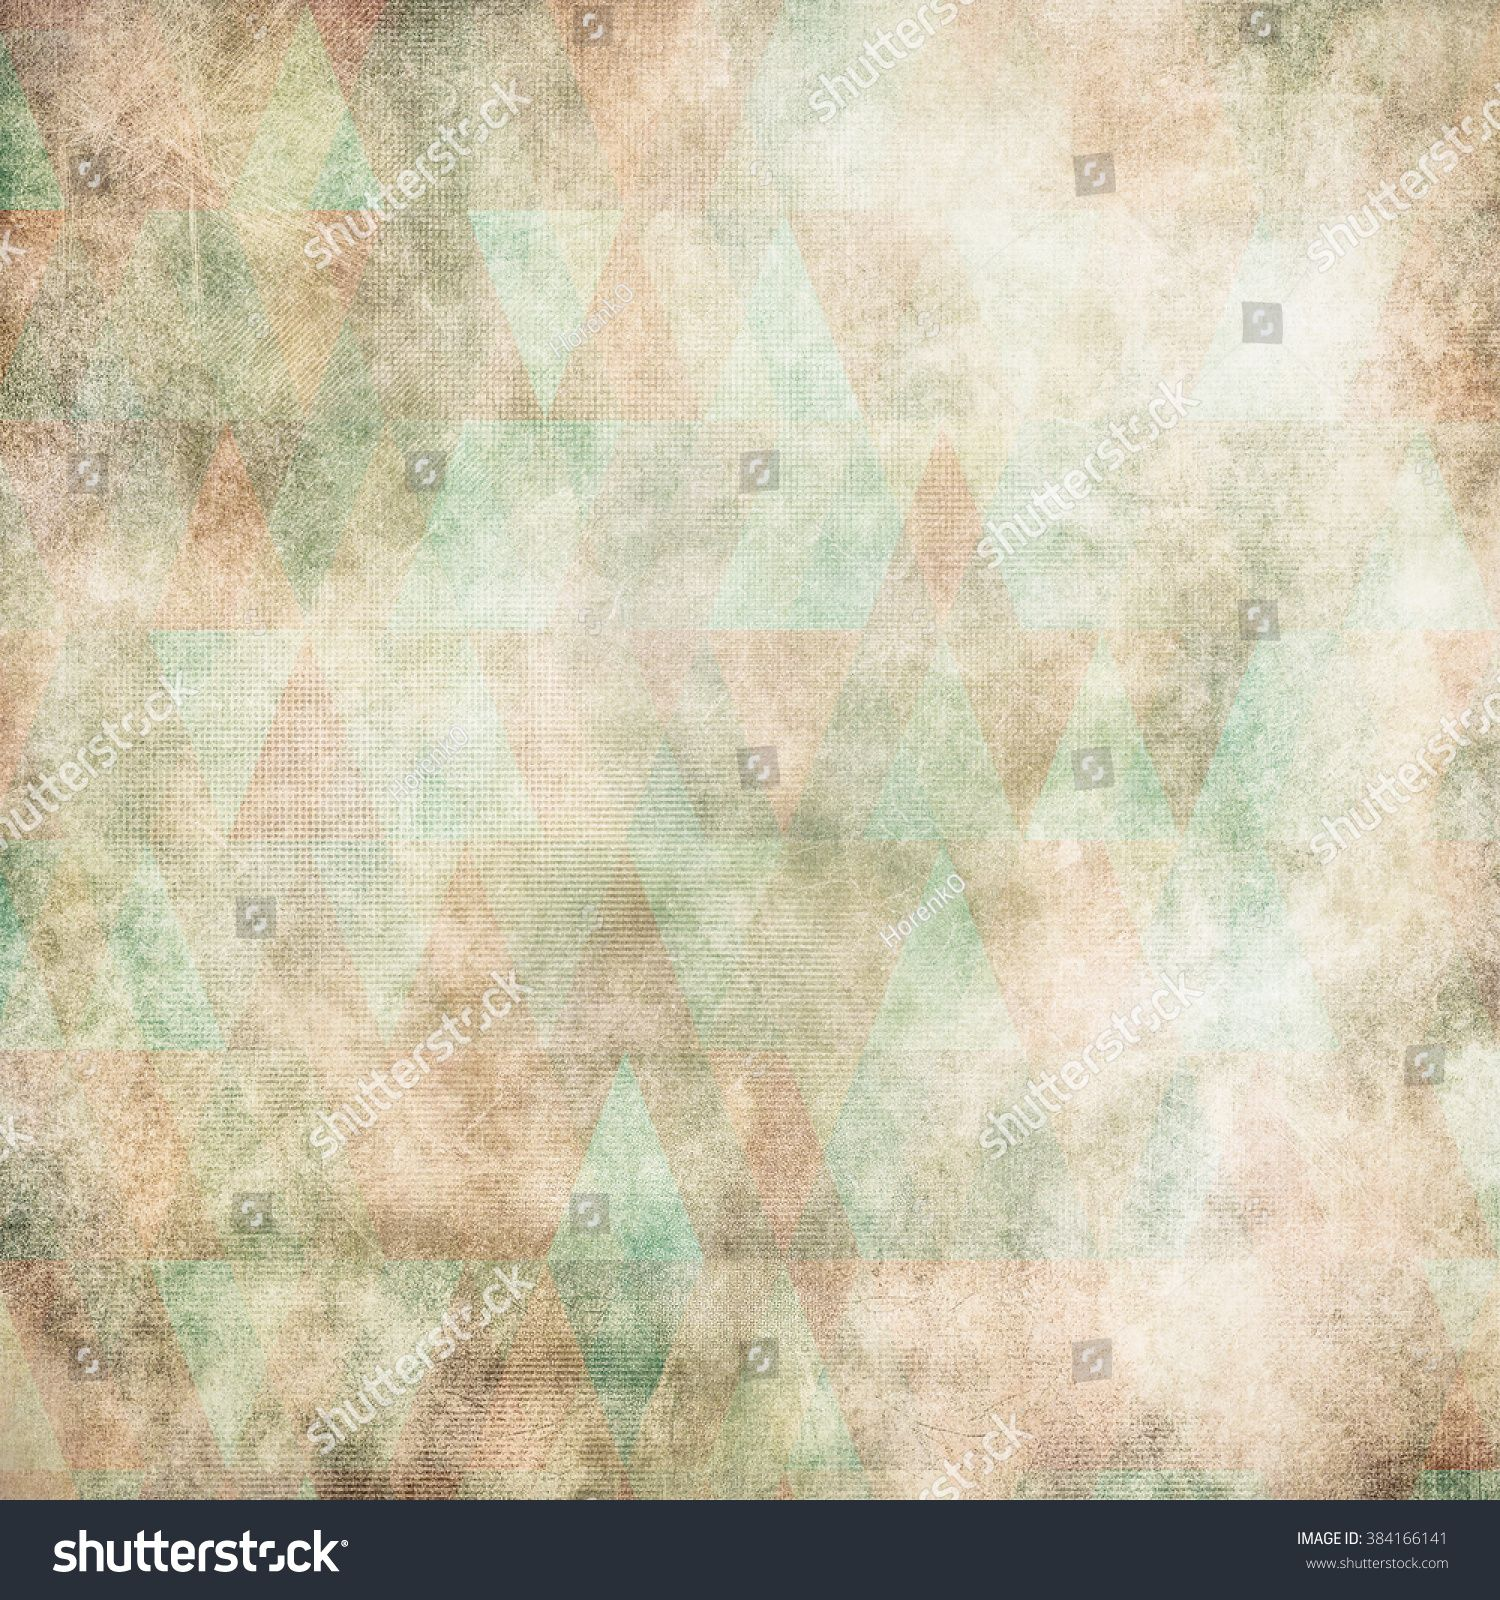 Grunge Background With Vintage And Retro Design Elements Ad Ad Vintage Background Grunge Elements In 2020 Retro Design Background Vintage Design Elements